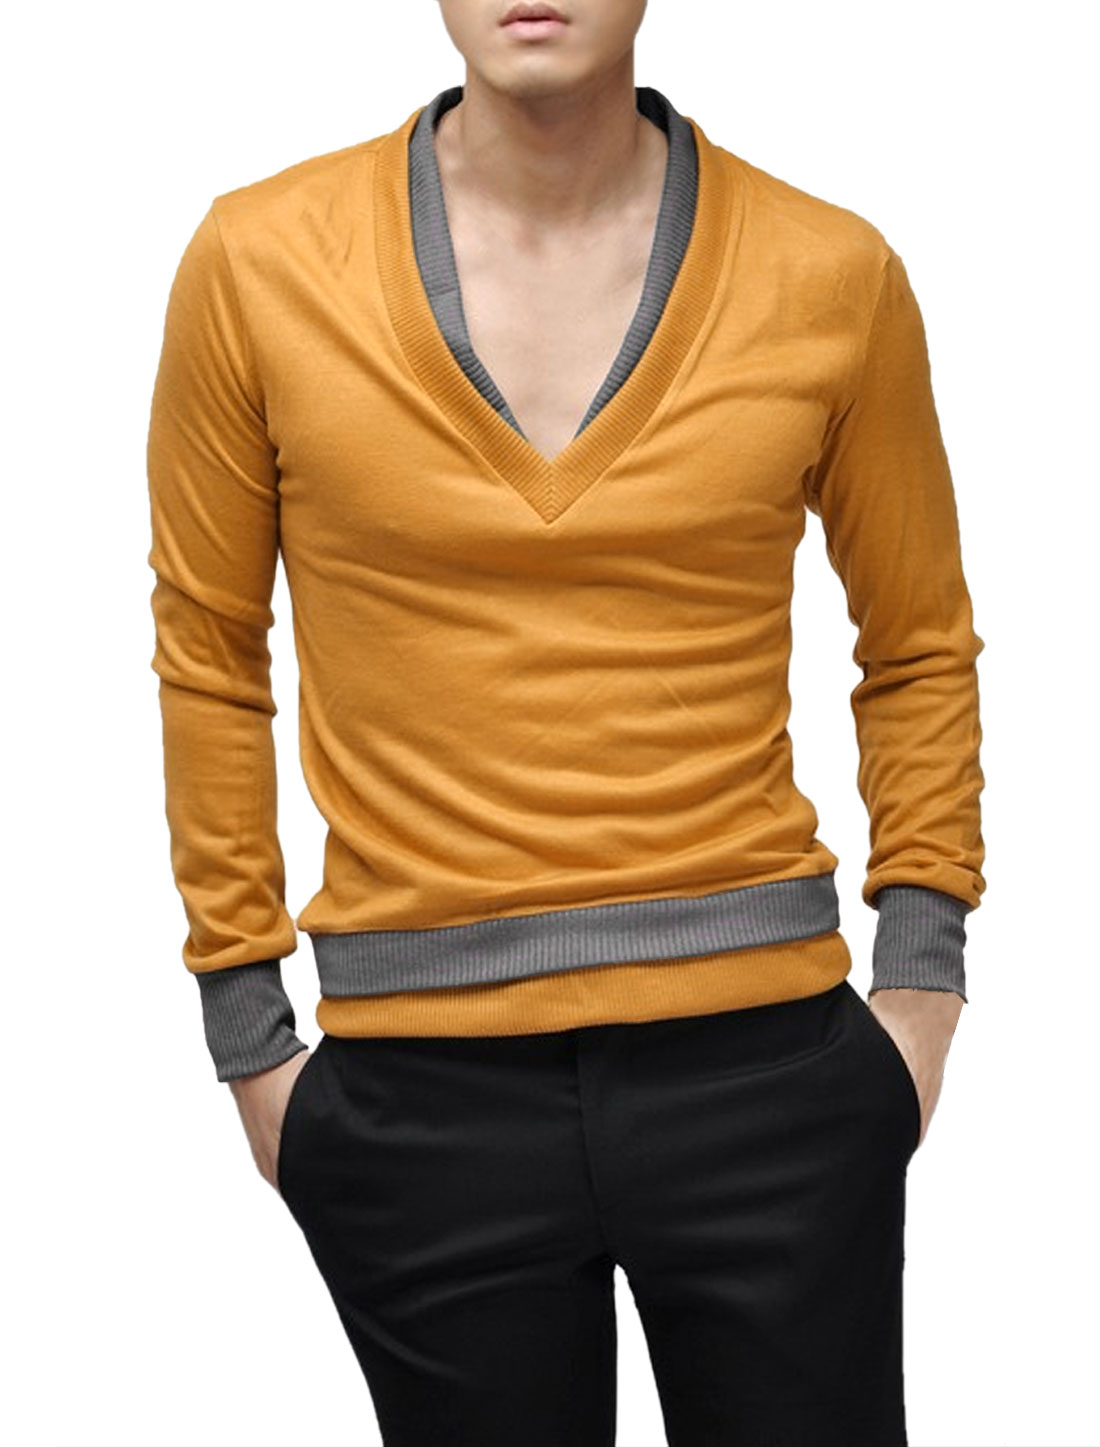 Men Double Layered V Neck Long Sleeve Leisure Stretch Top Dark Yellow S